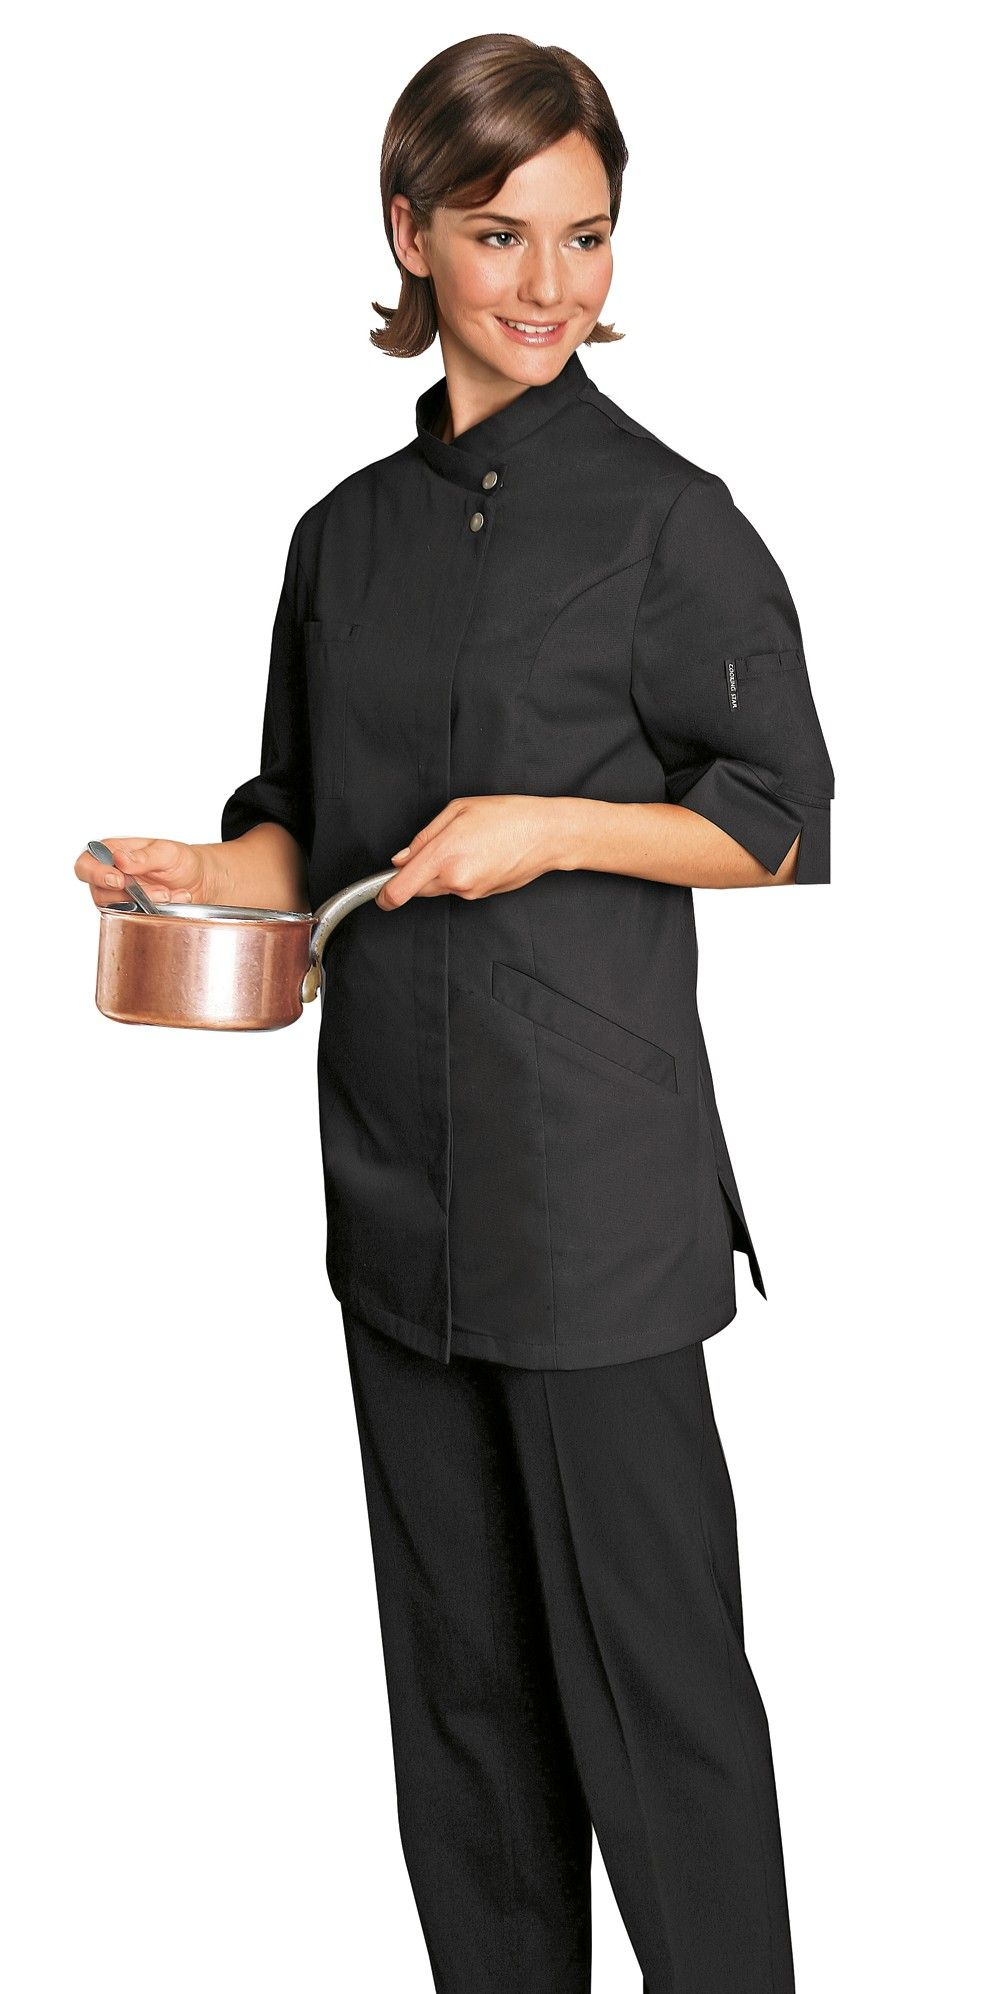 Verana Female Chef Jacket Black Chef jackets, Jackets